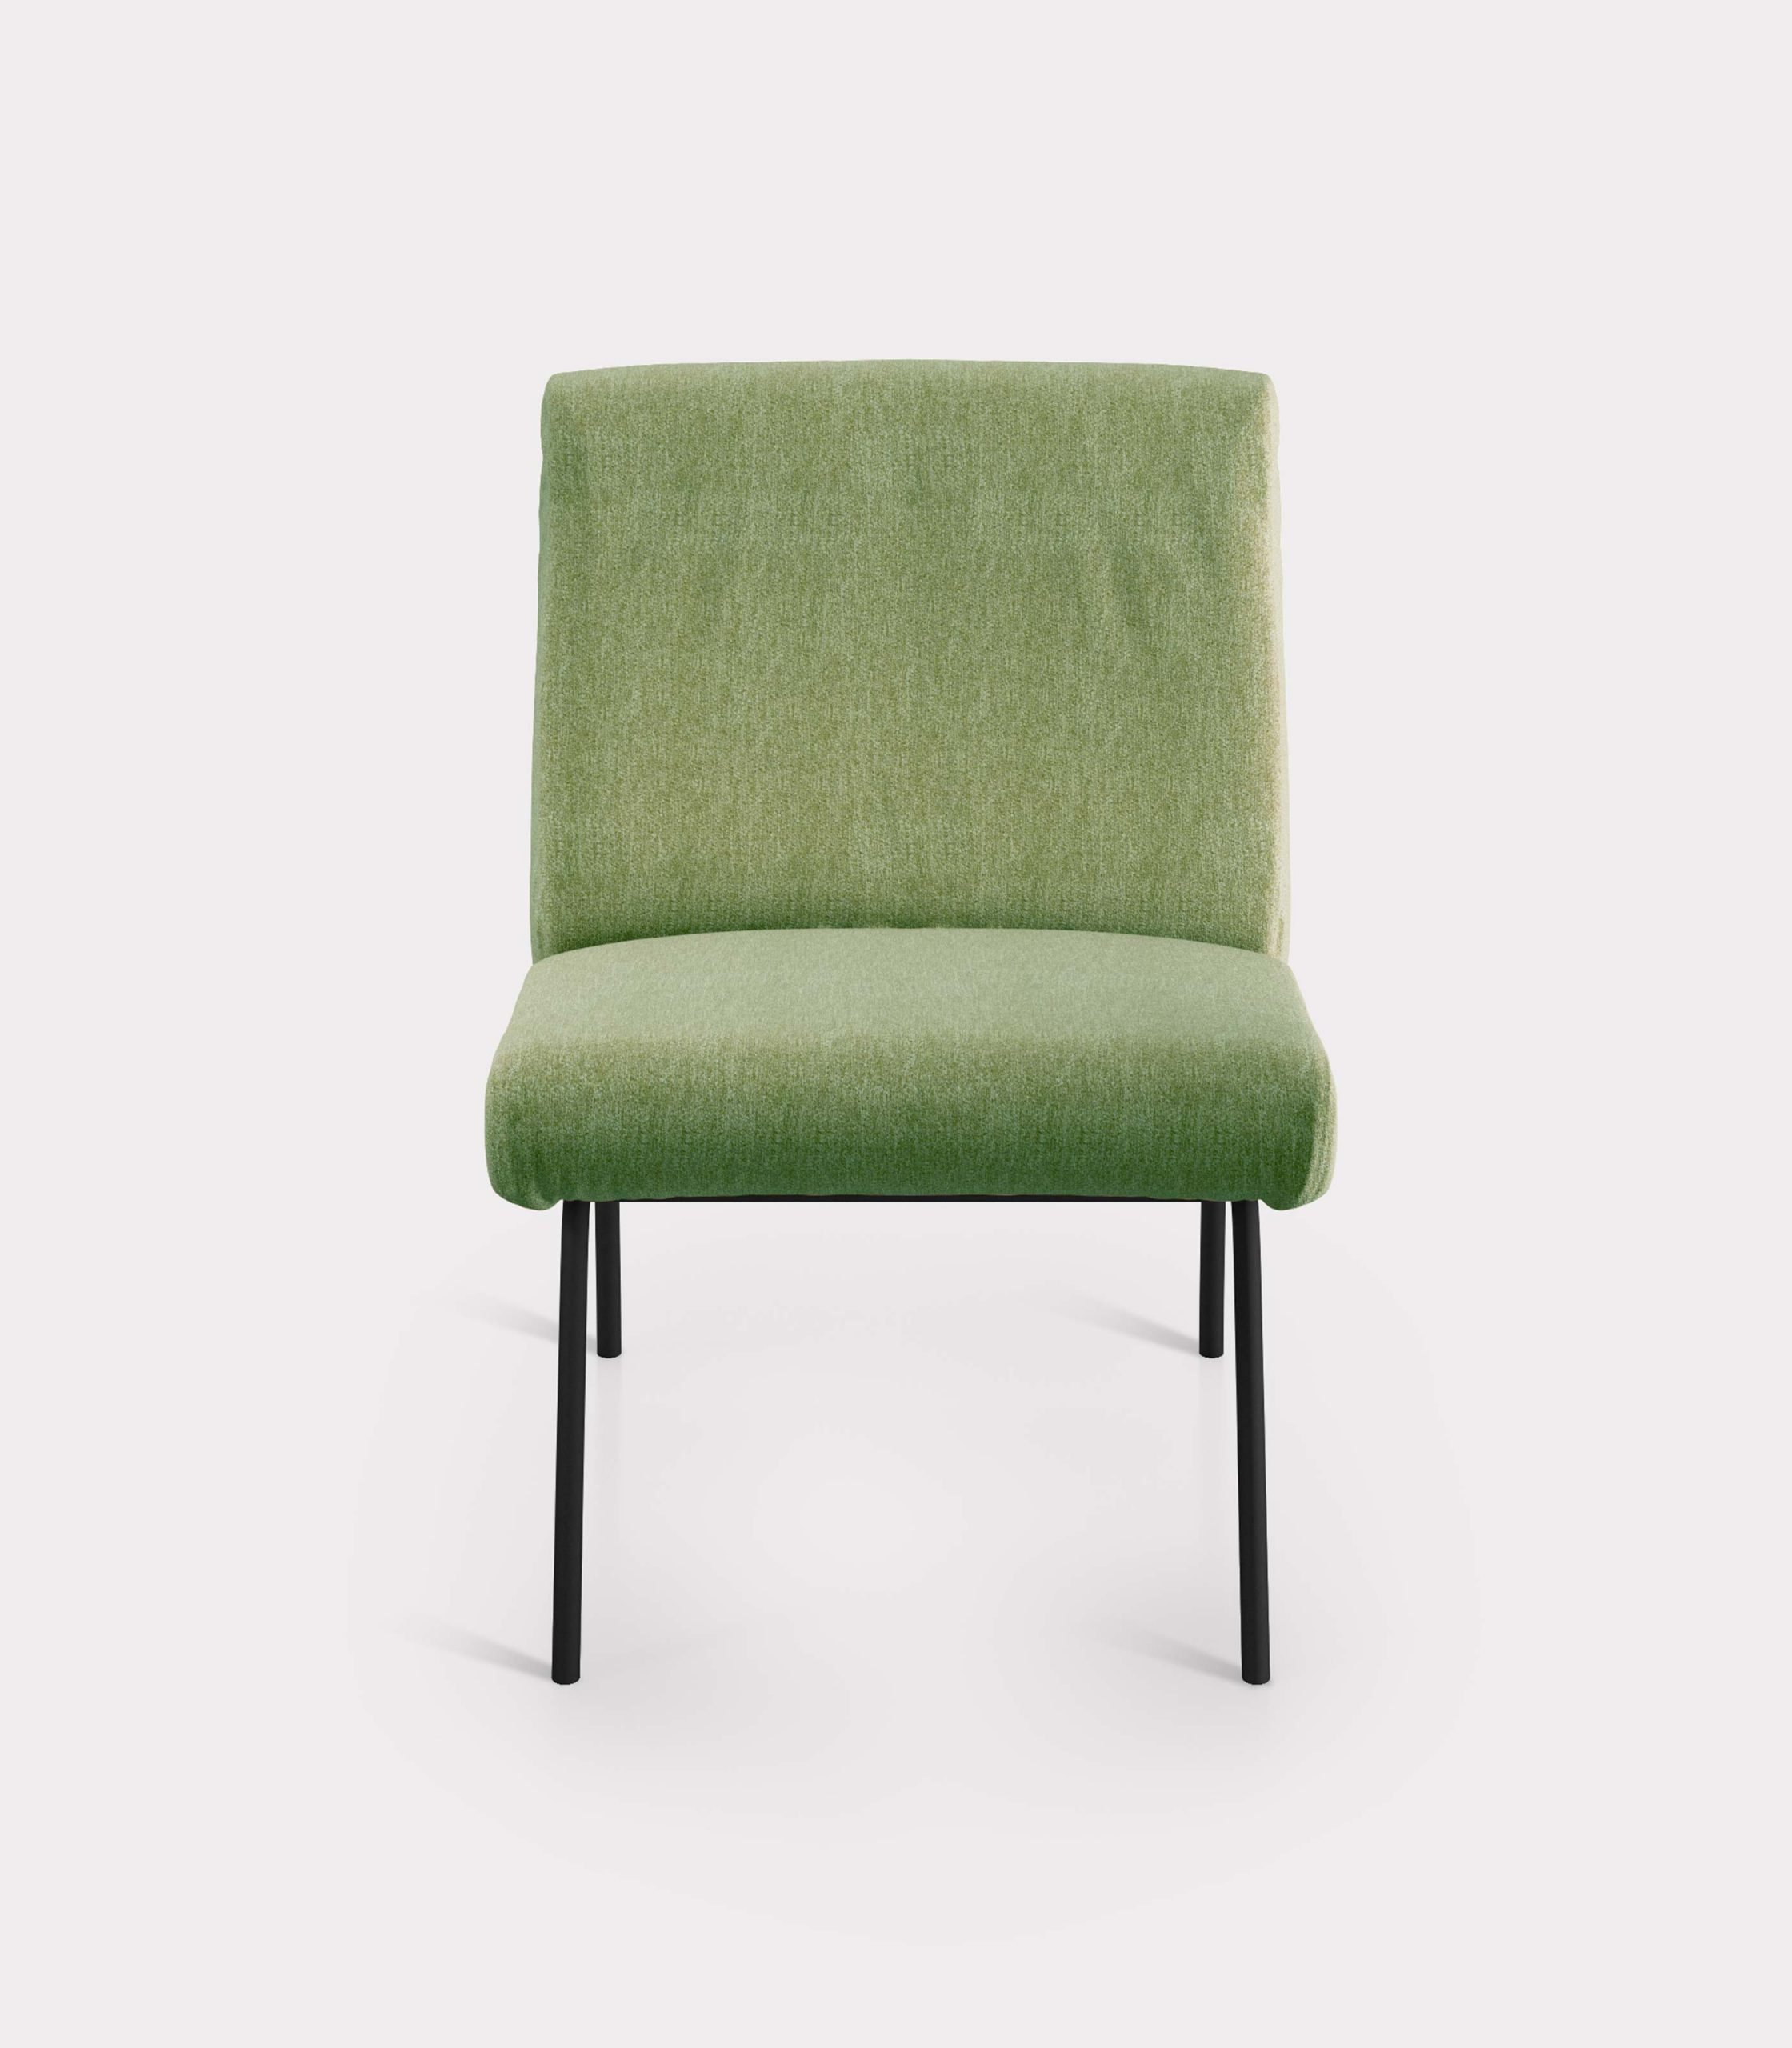 Olive green armchair in bouclé fabric milano design F